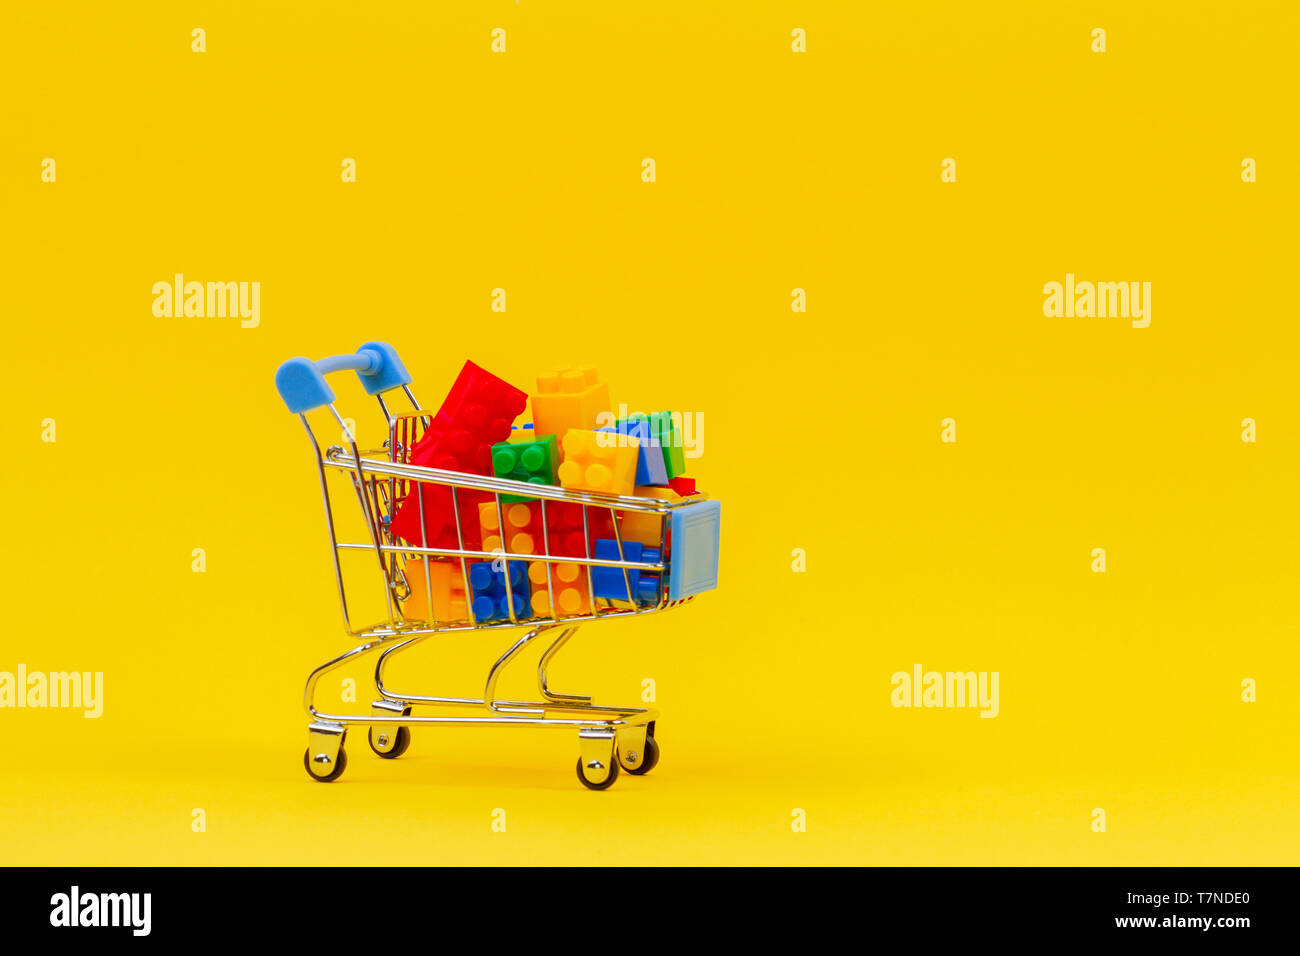 Shopping trolley cart full of colorful bricks on yellow background - Stock Image